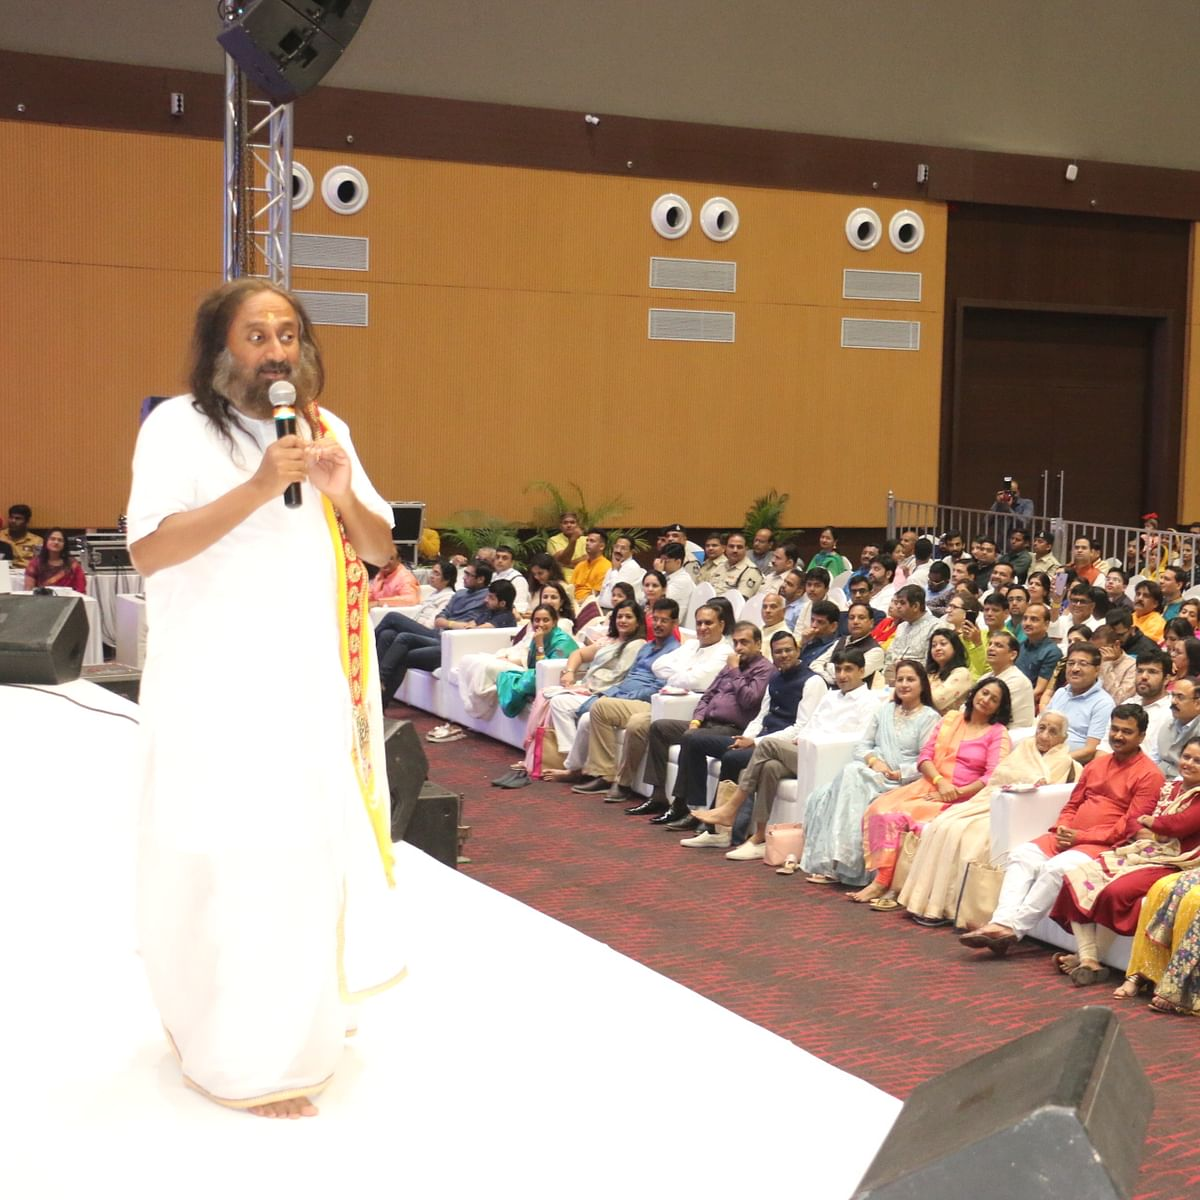 Indore: Sri Sri asks devotees to have patience, quit fear